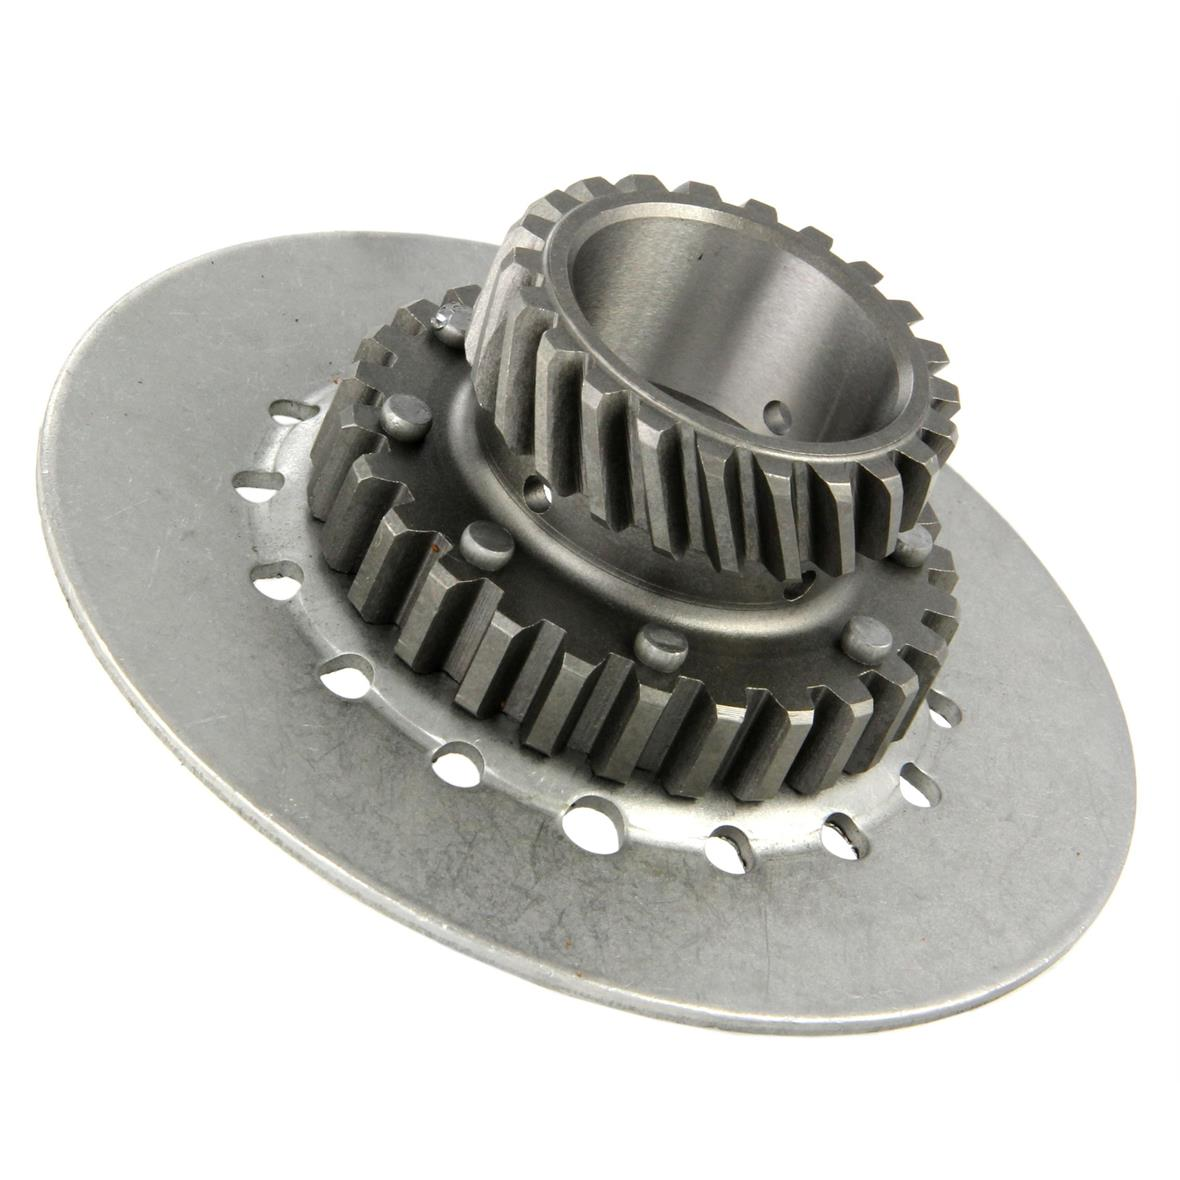 Product Image for 'Clutch Gear Cog 22/​26 teethTitle'